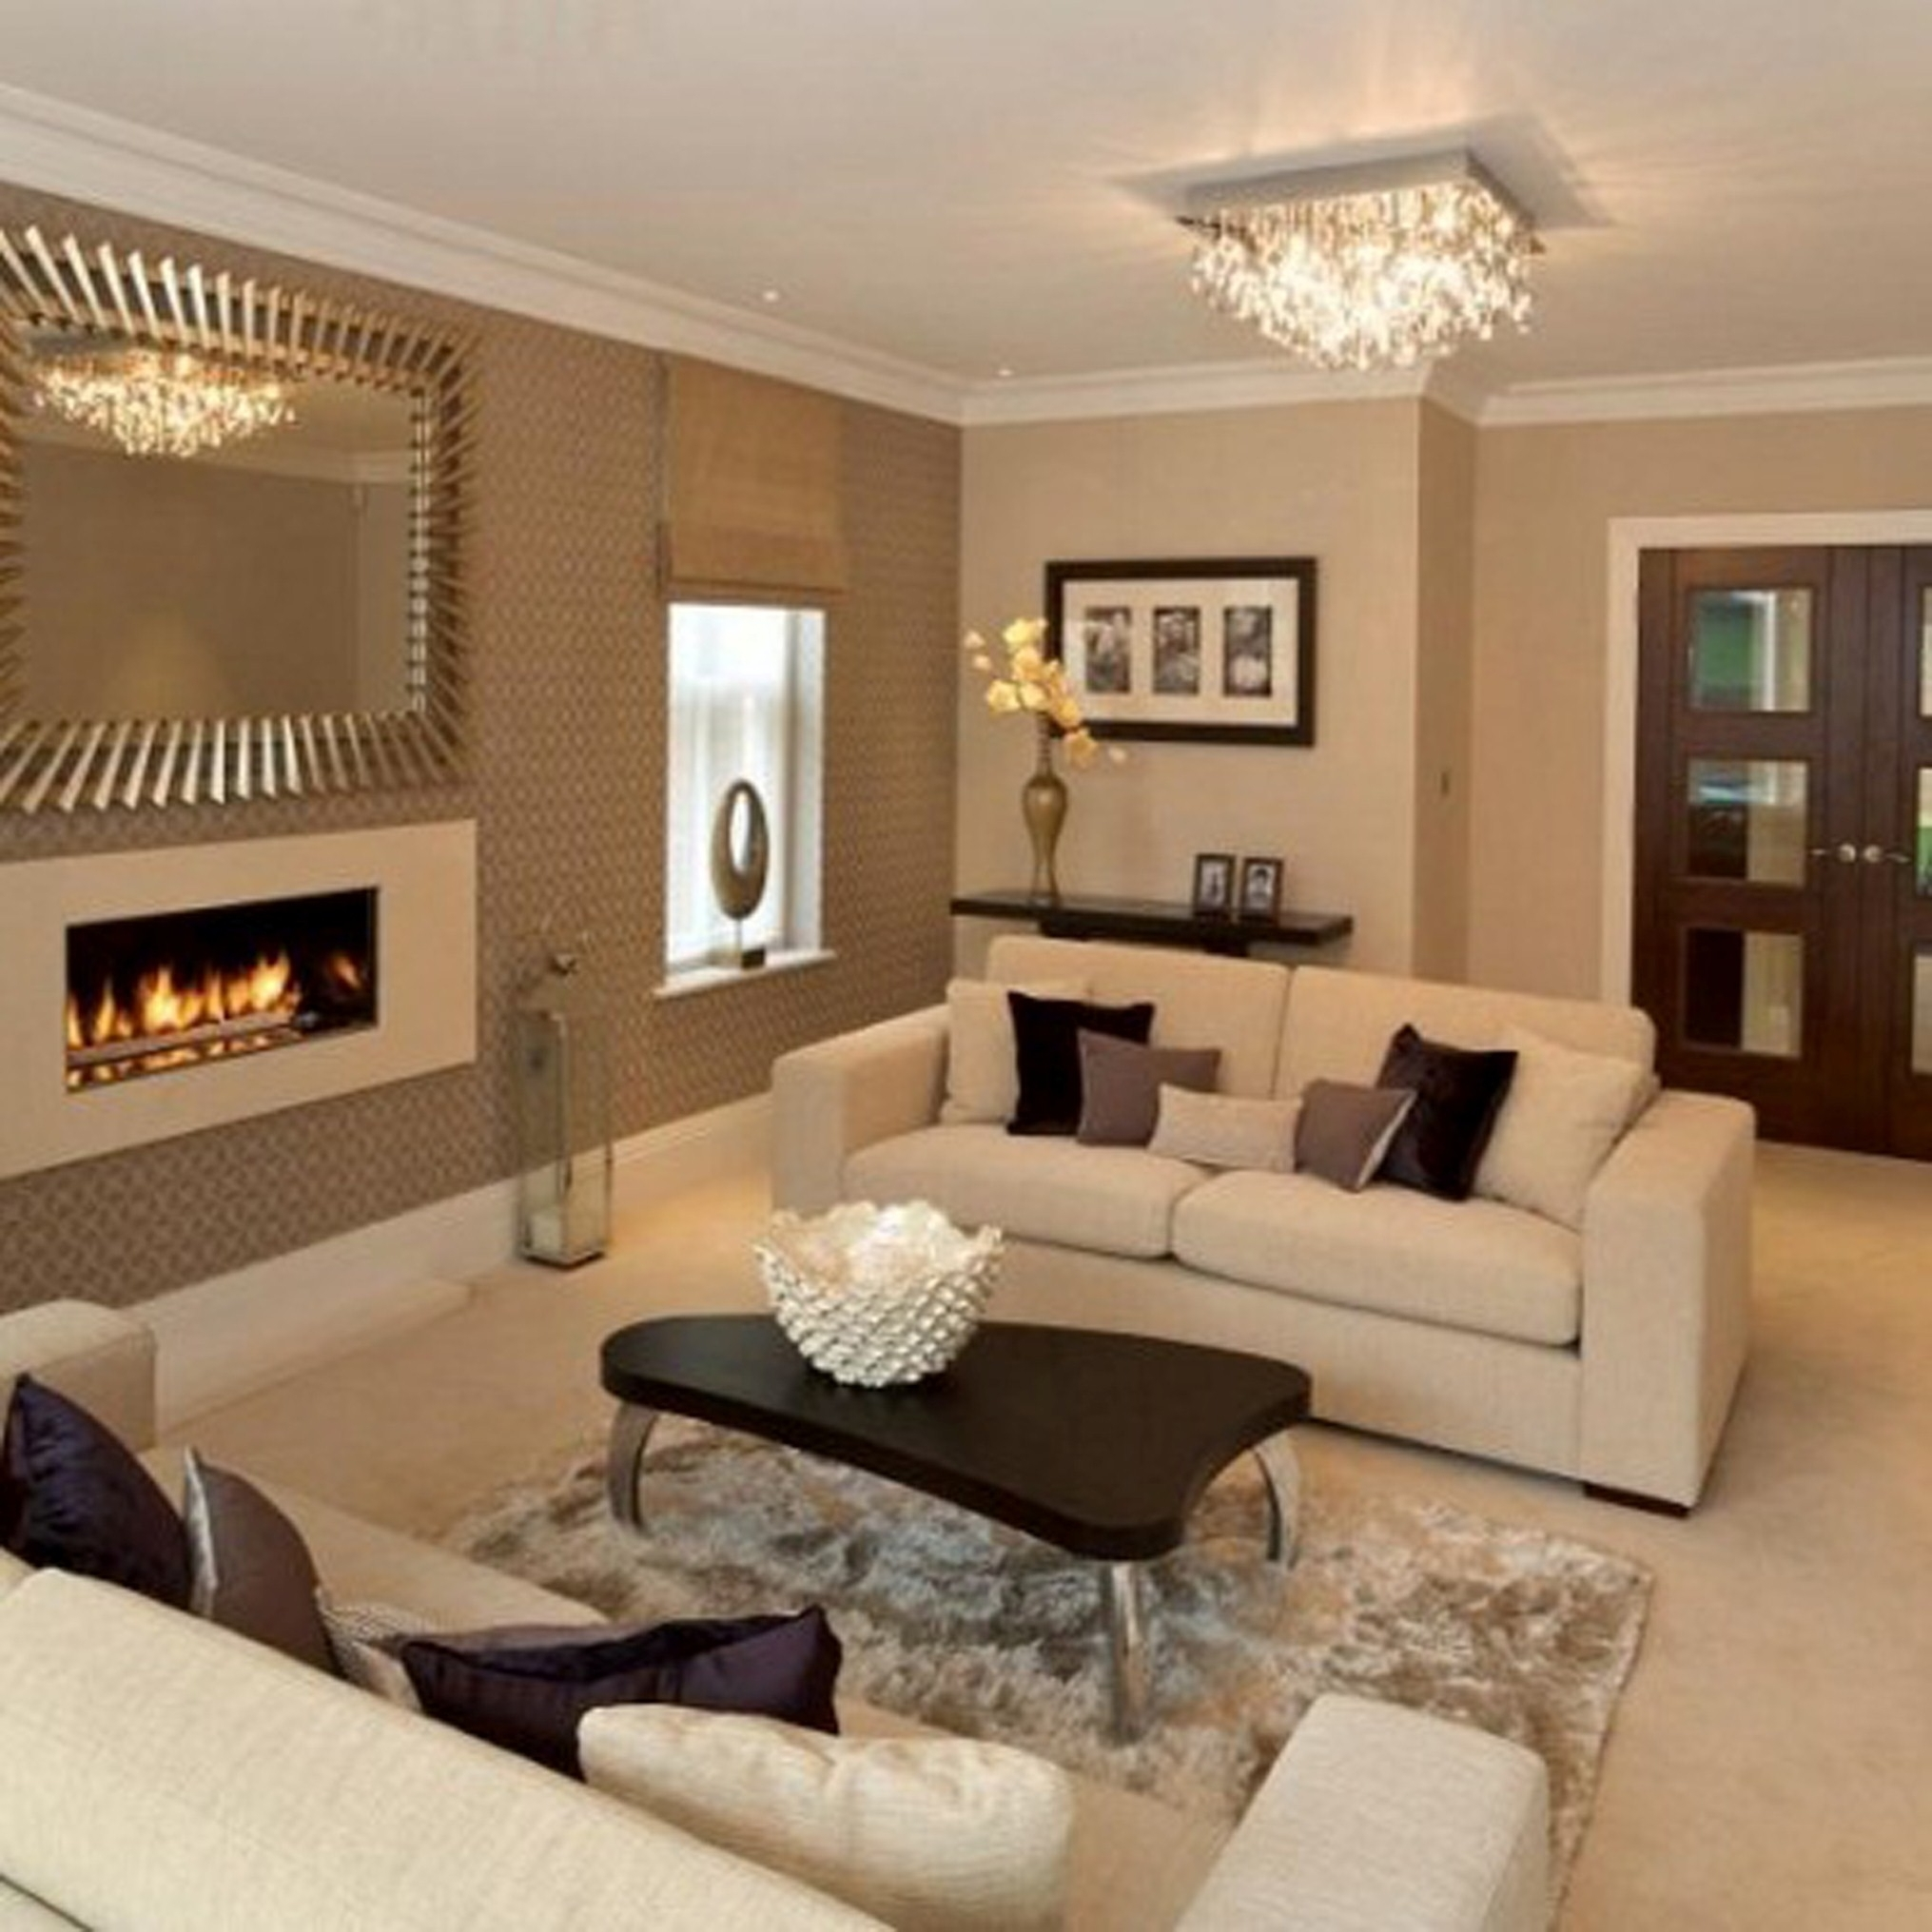 Modern Living Room With Exquisite Wall Fireplace Plus Pretty Unique Coffee Table Curve Design (View 7 of 30)